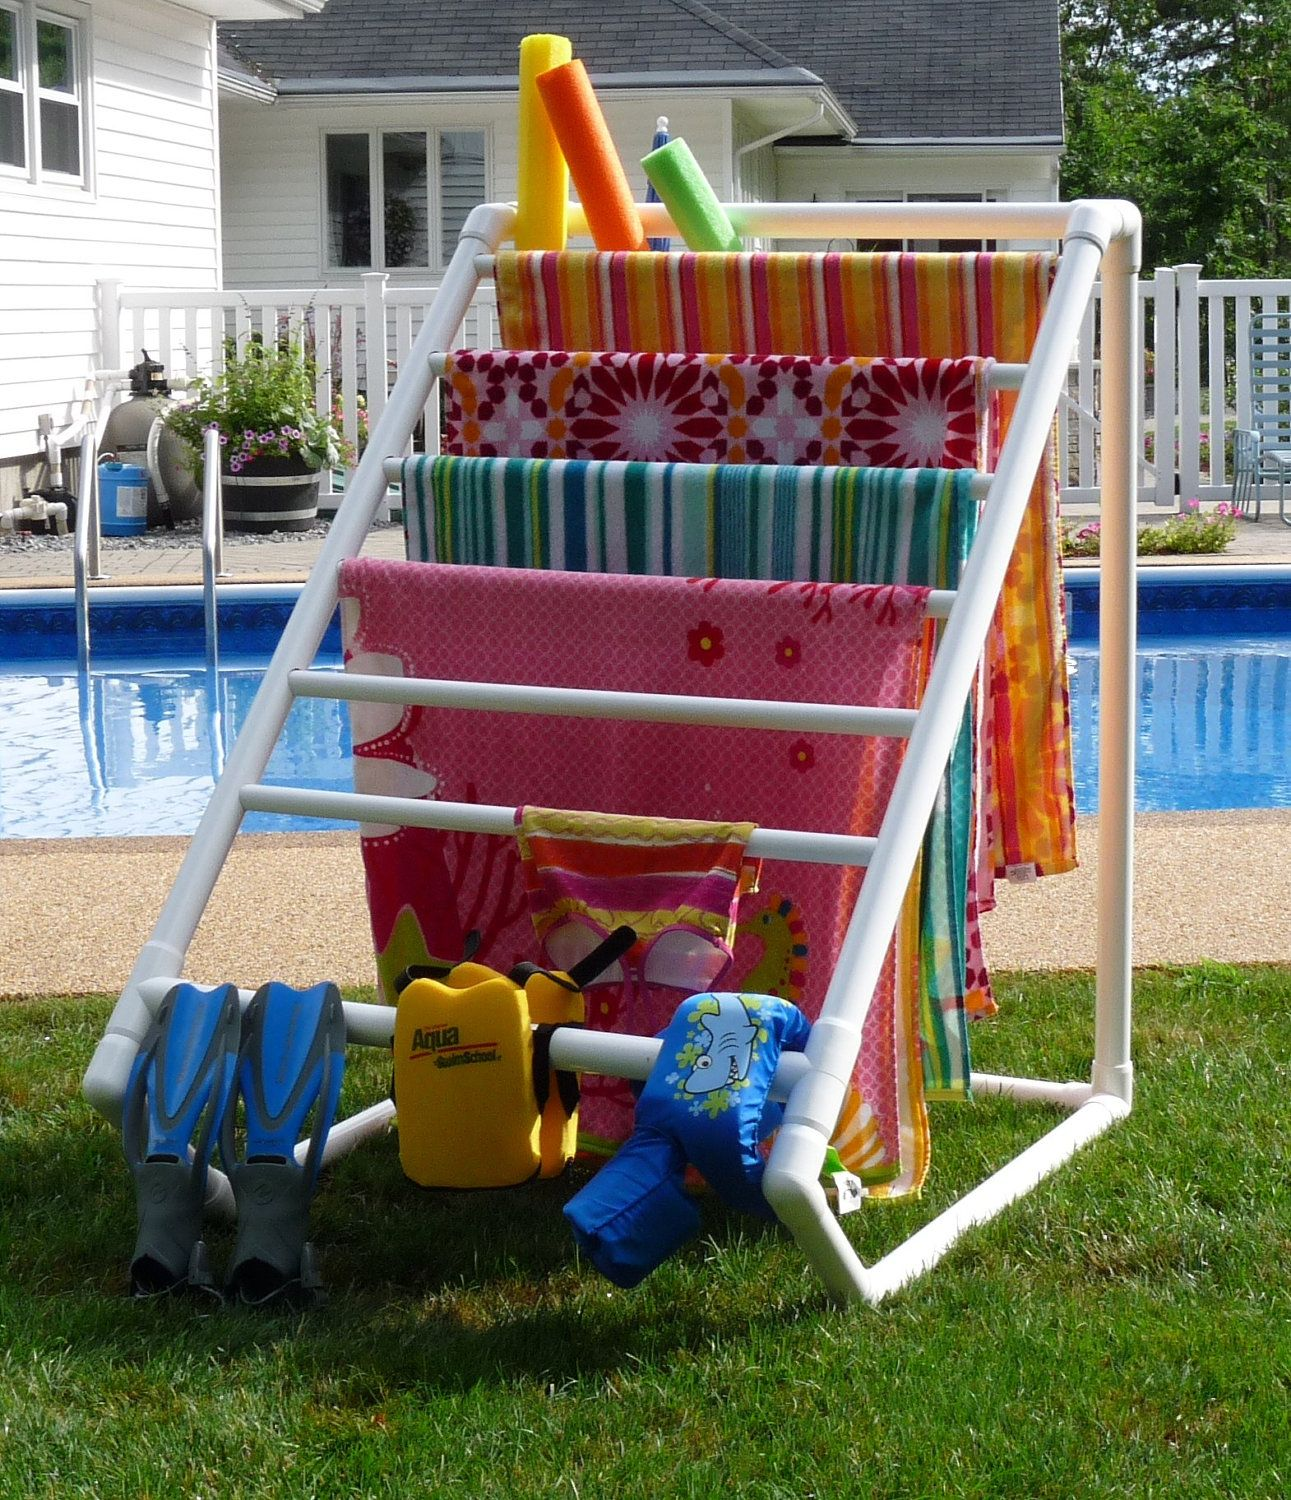 Towel rack for the summer using pvc piping! This would be great at the lake!